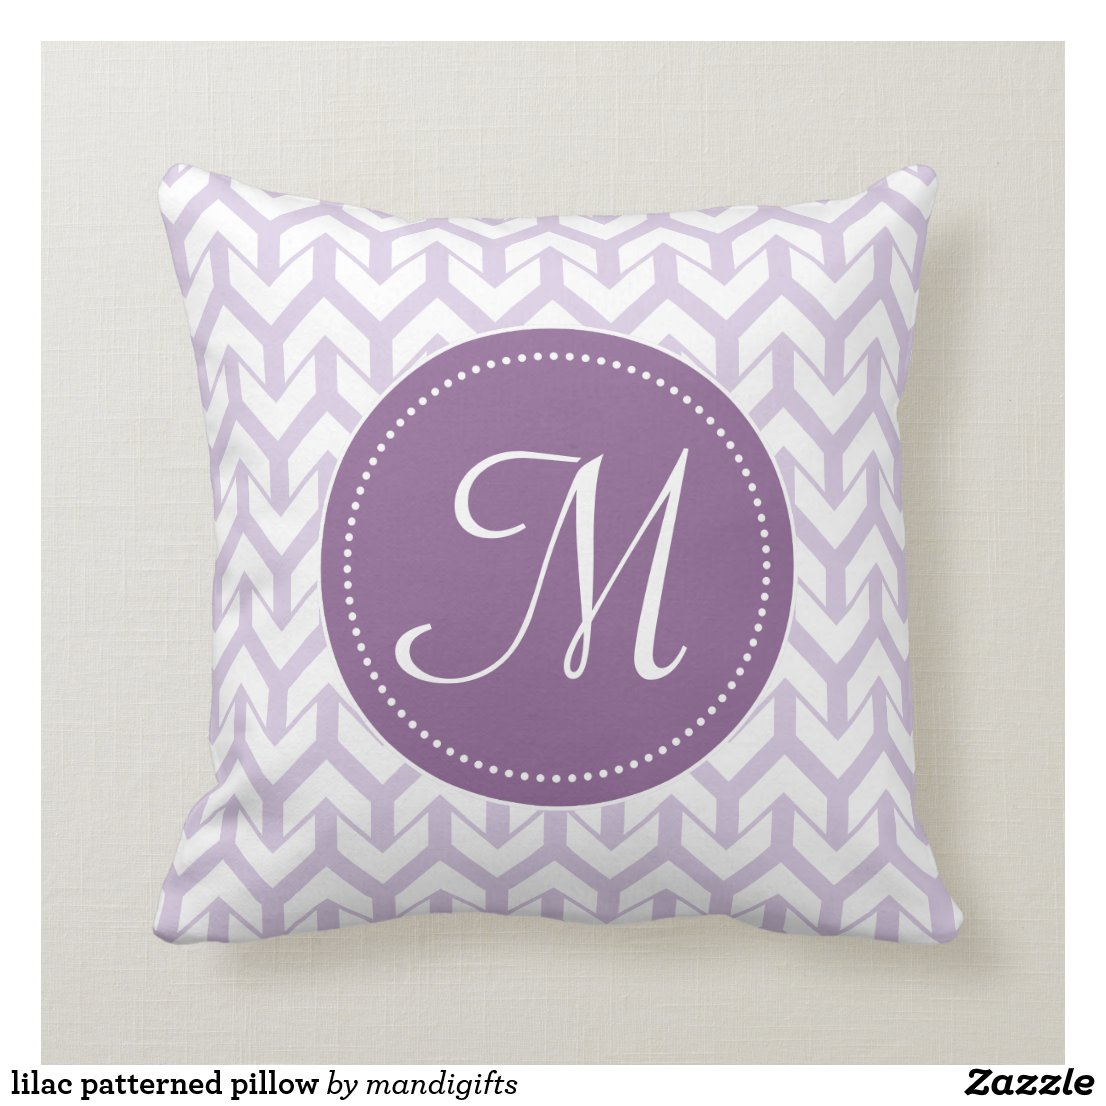 lilac patterned pillow